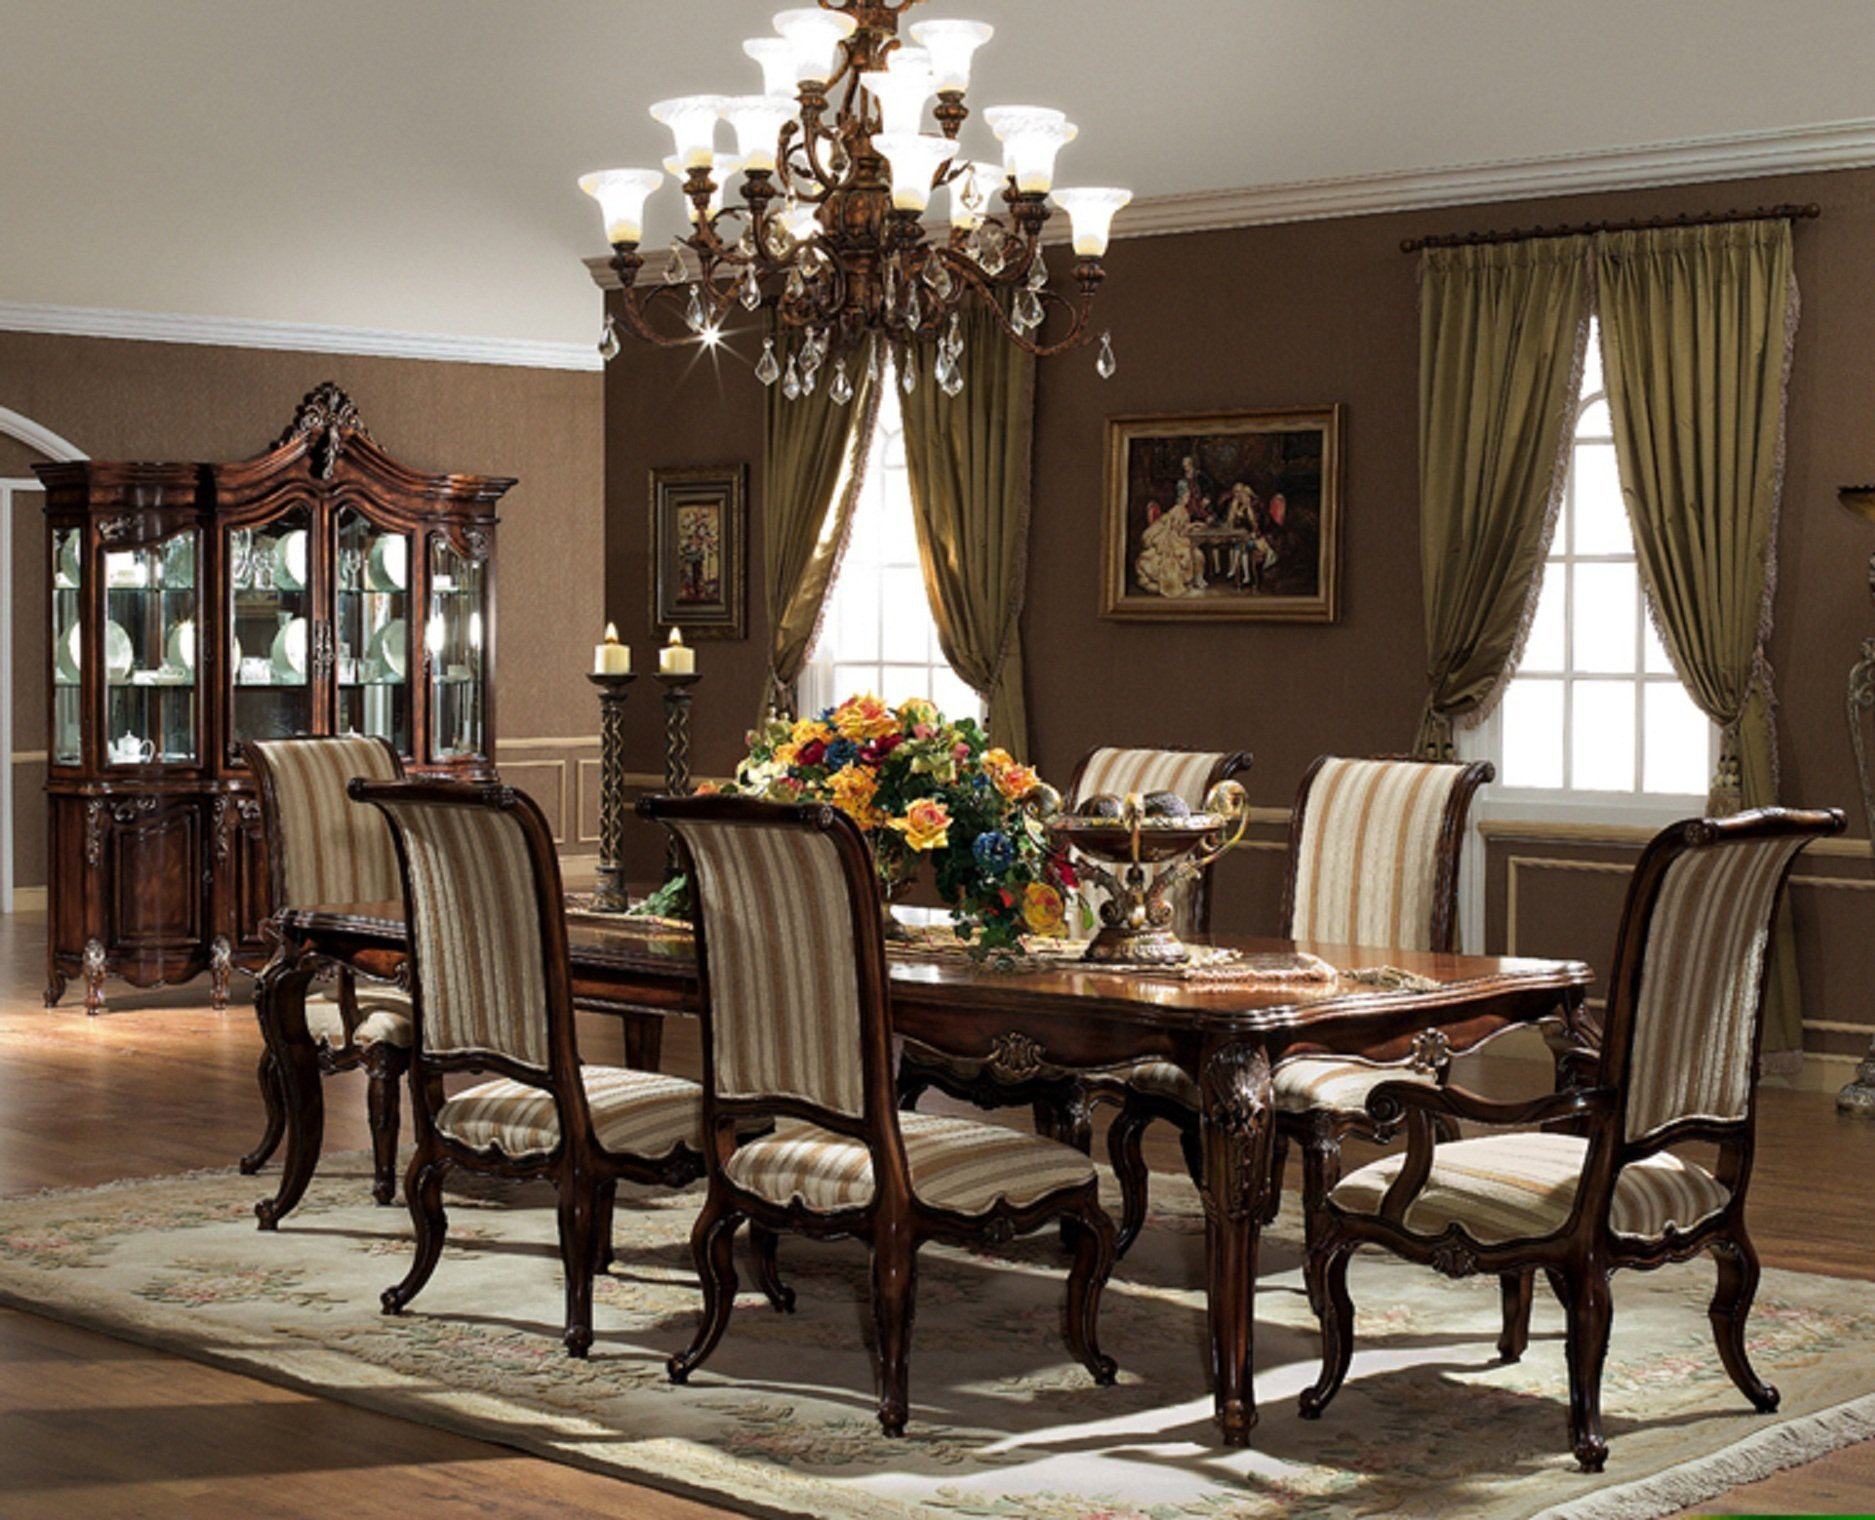 Best ideas about Dining Room Furniture . Save or Pin The Valencia Formal Dining Room Collection Now.